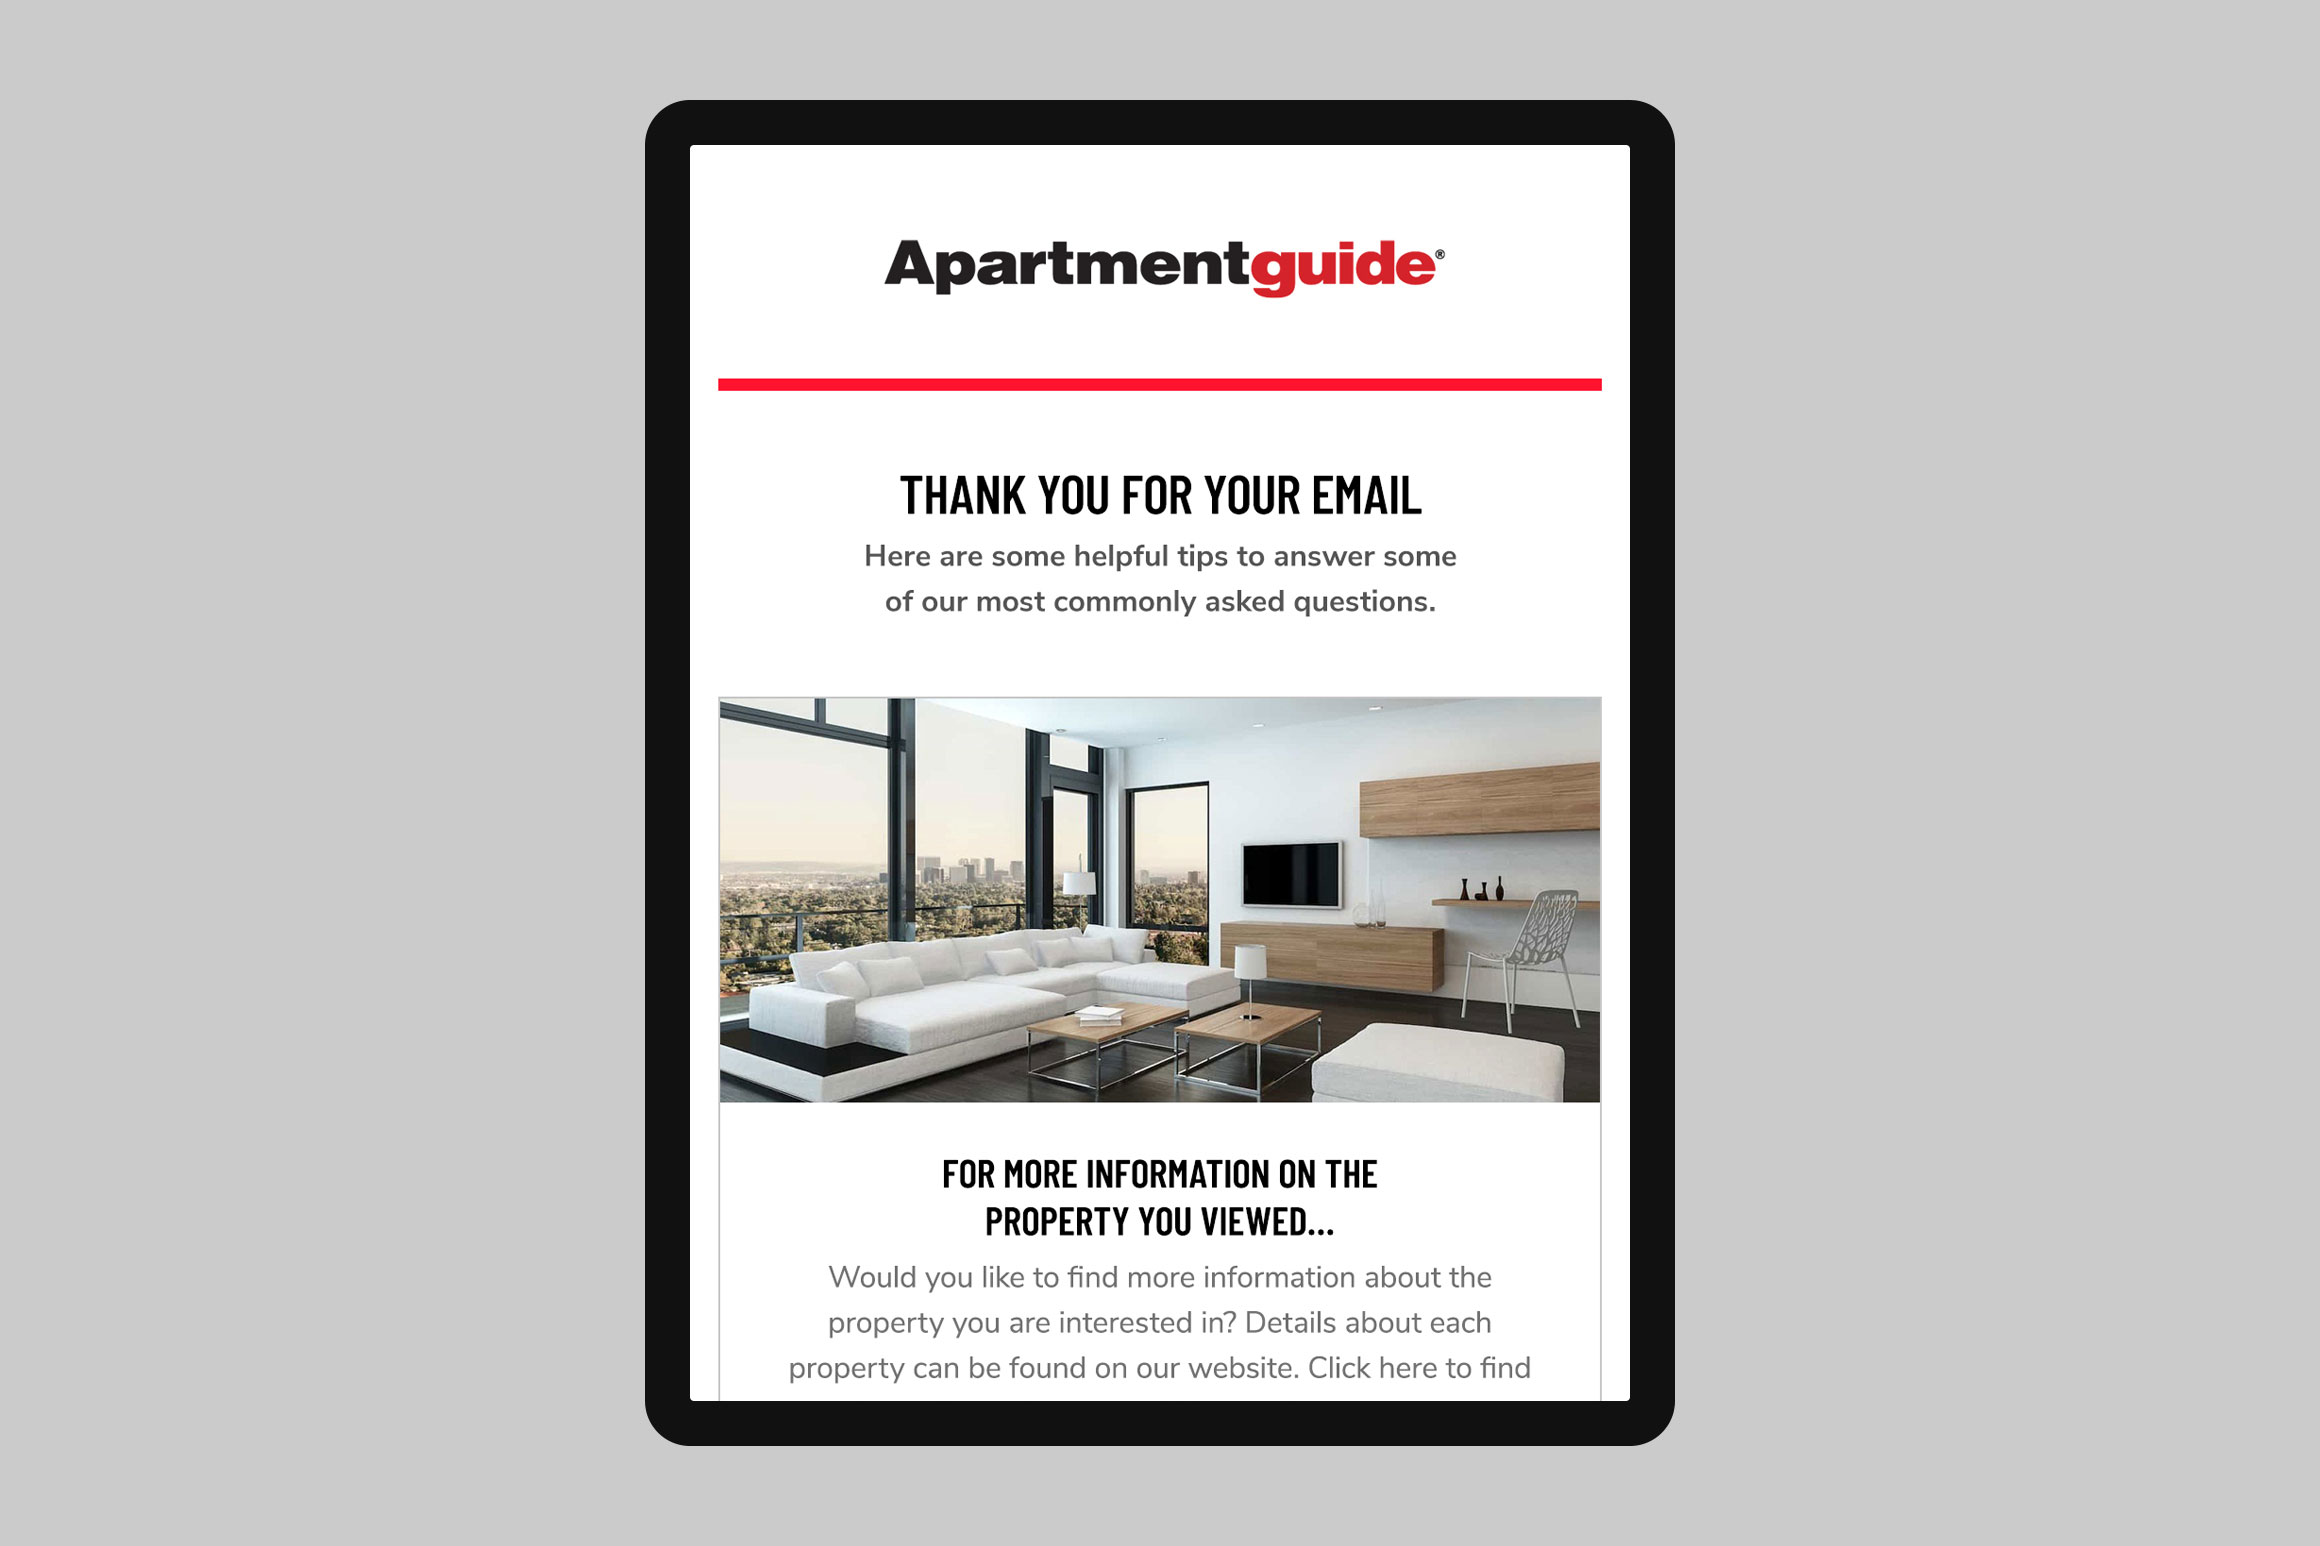 Apartment Guide Reply Email